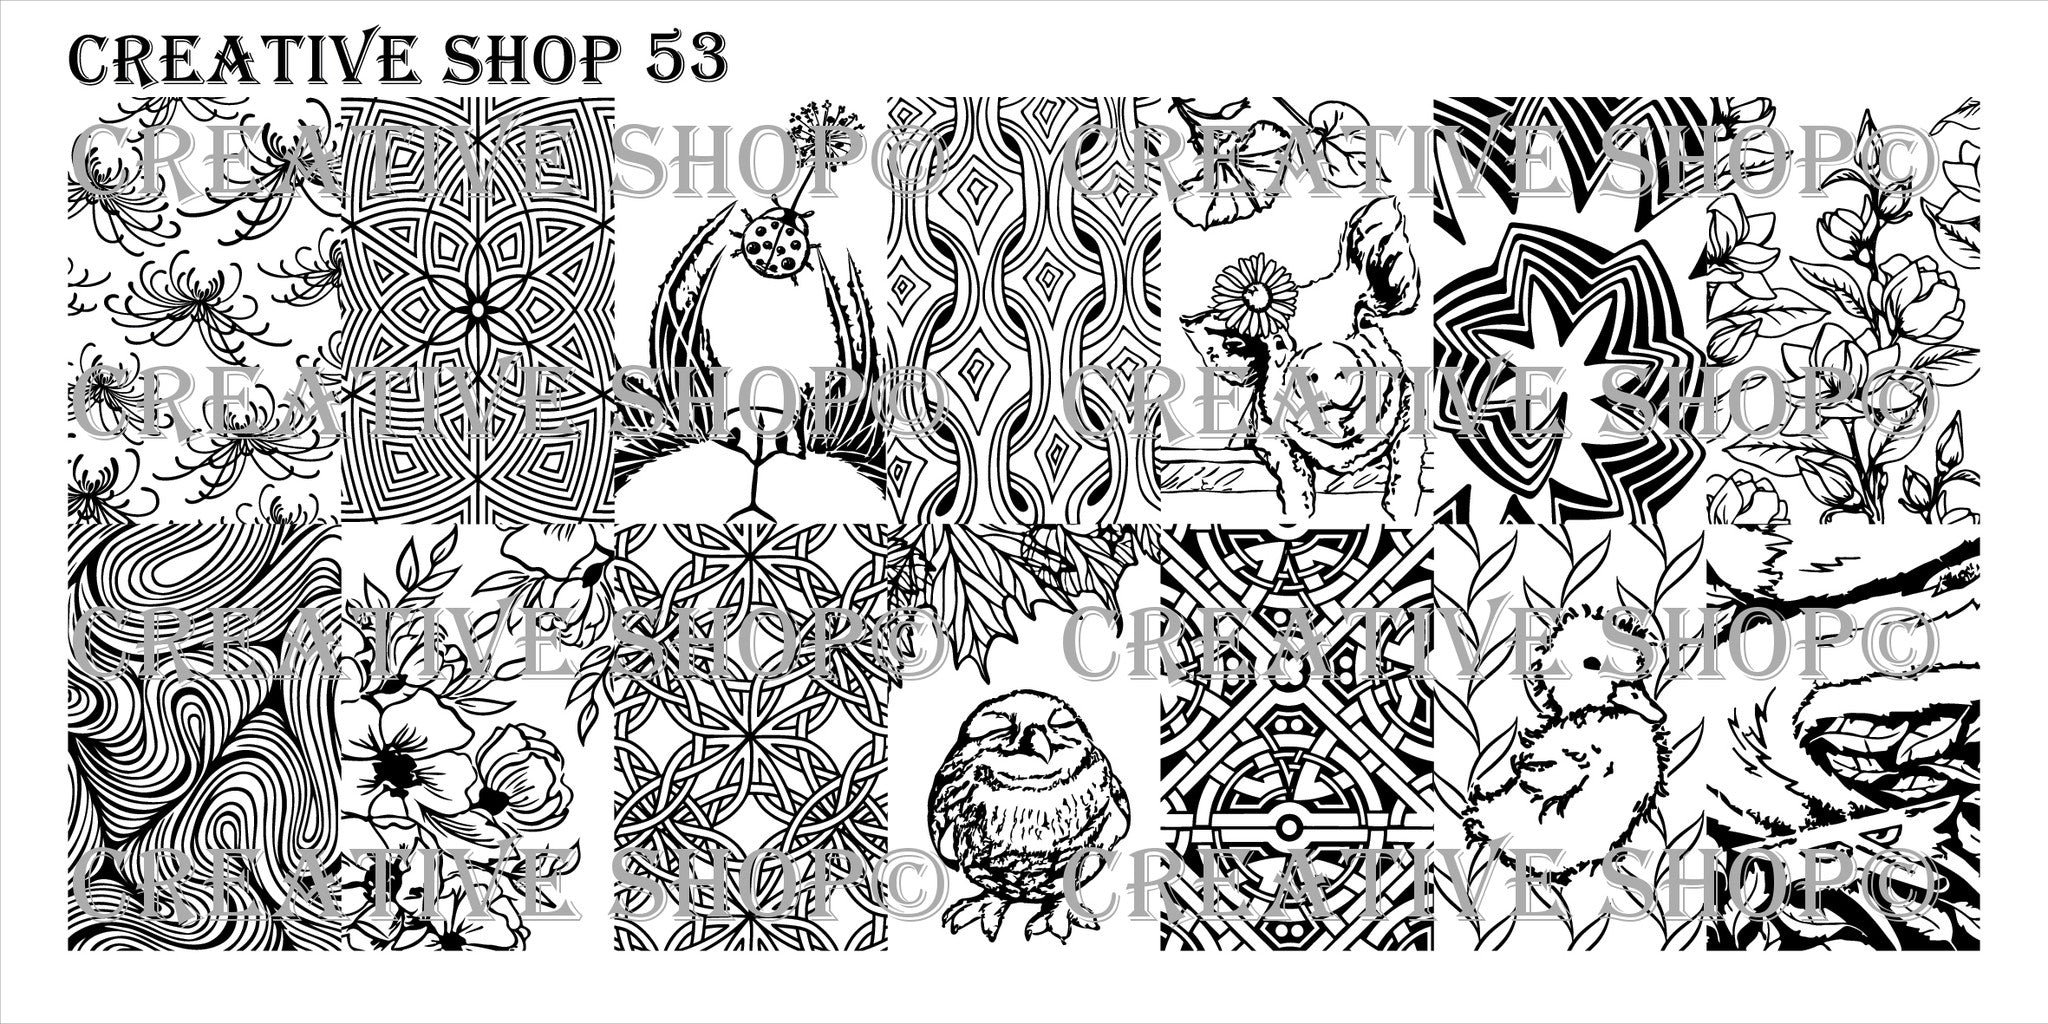 Creative Shop Stamping Plate 53